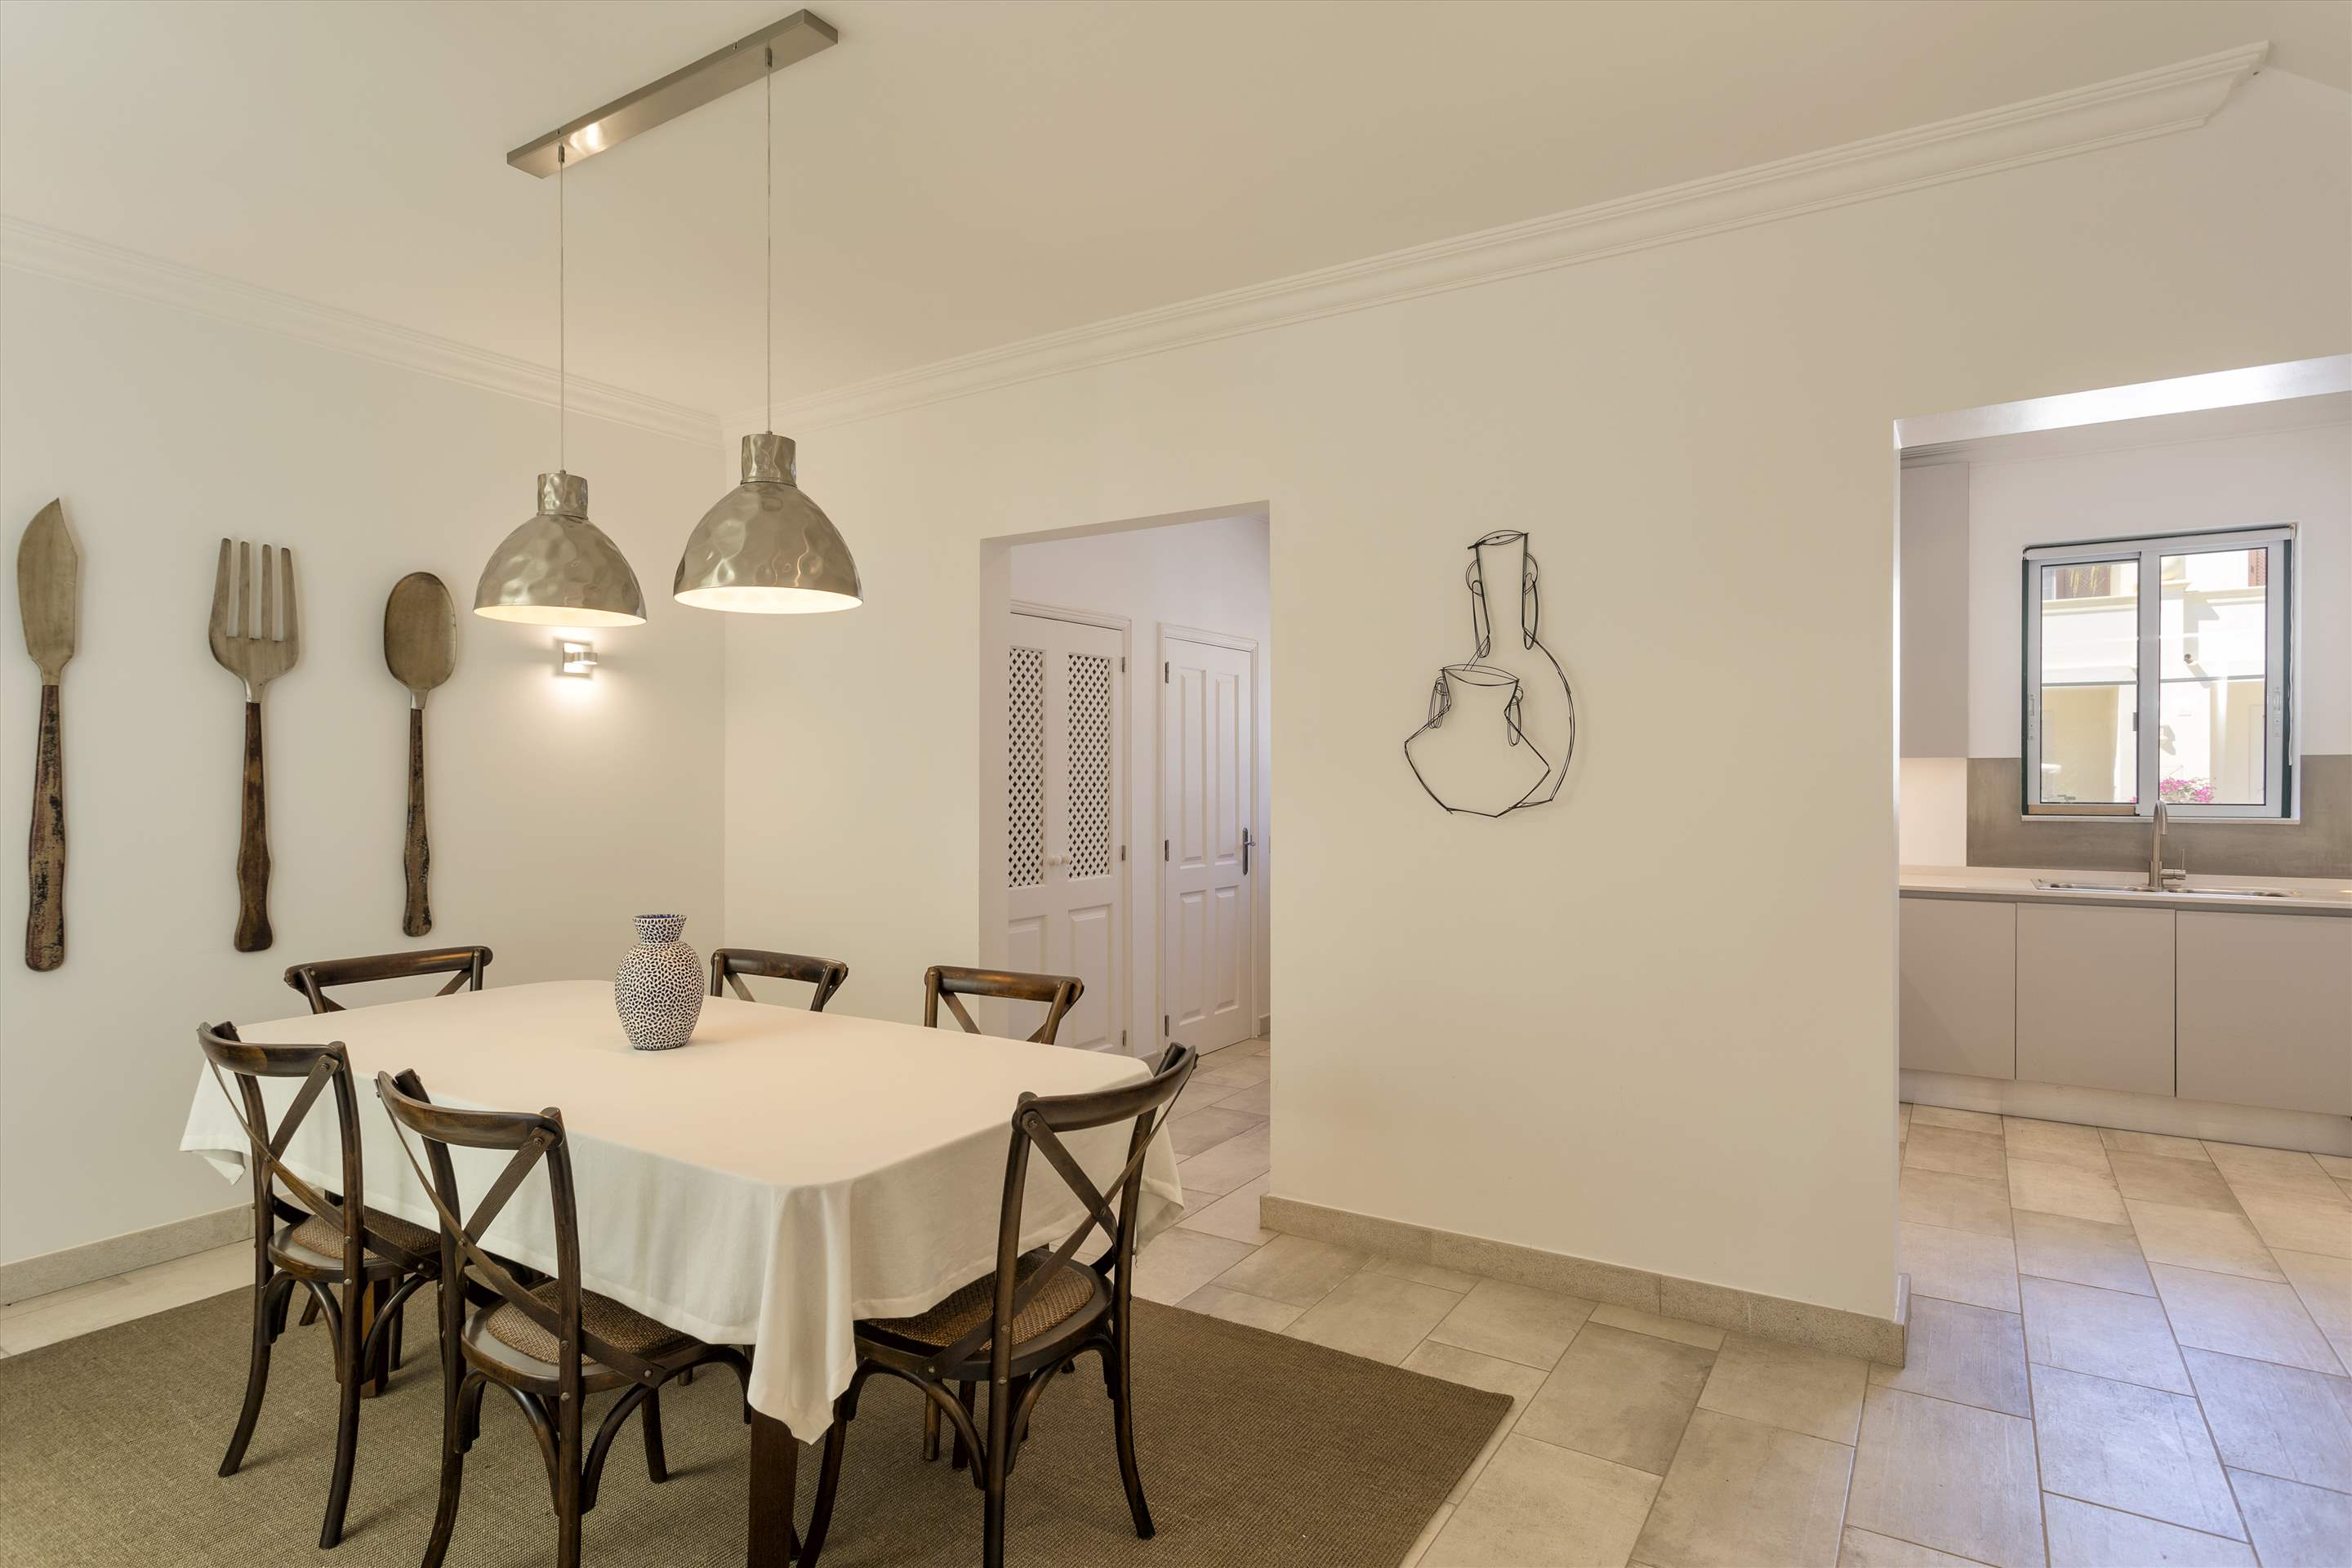 Townhouse Jessica, 3 bedroom villa in Quinta do Lago, Algarve Photo #6